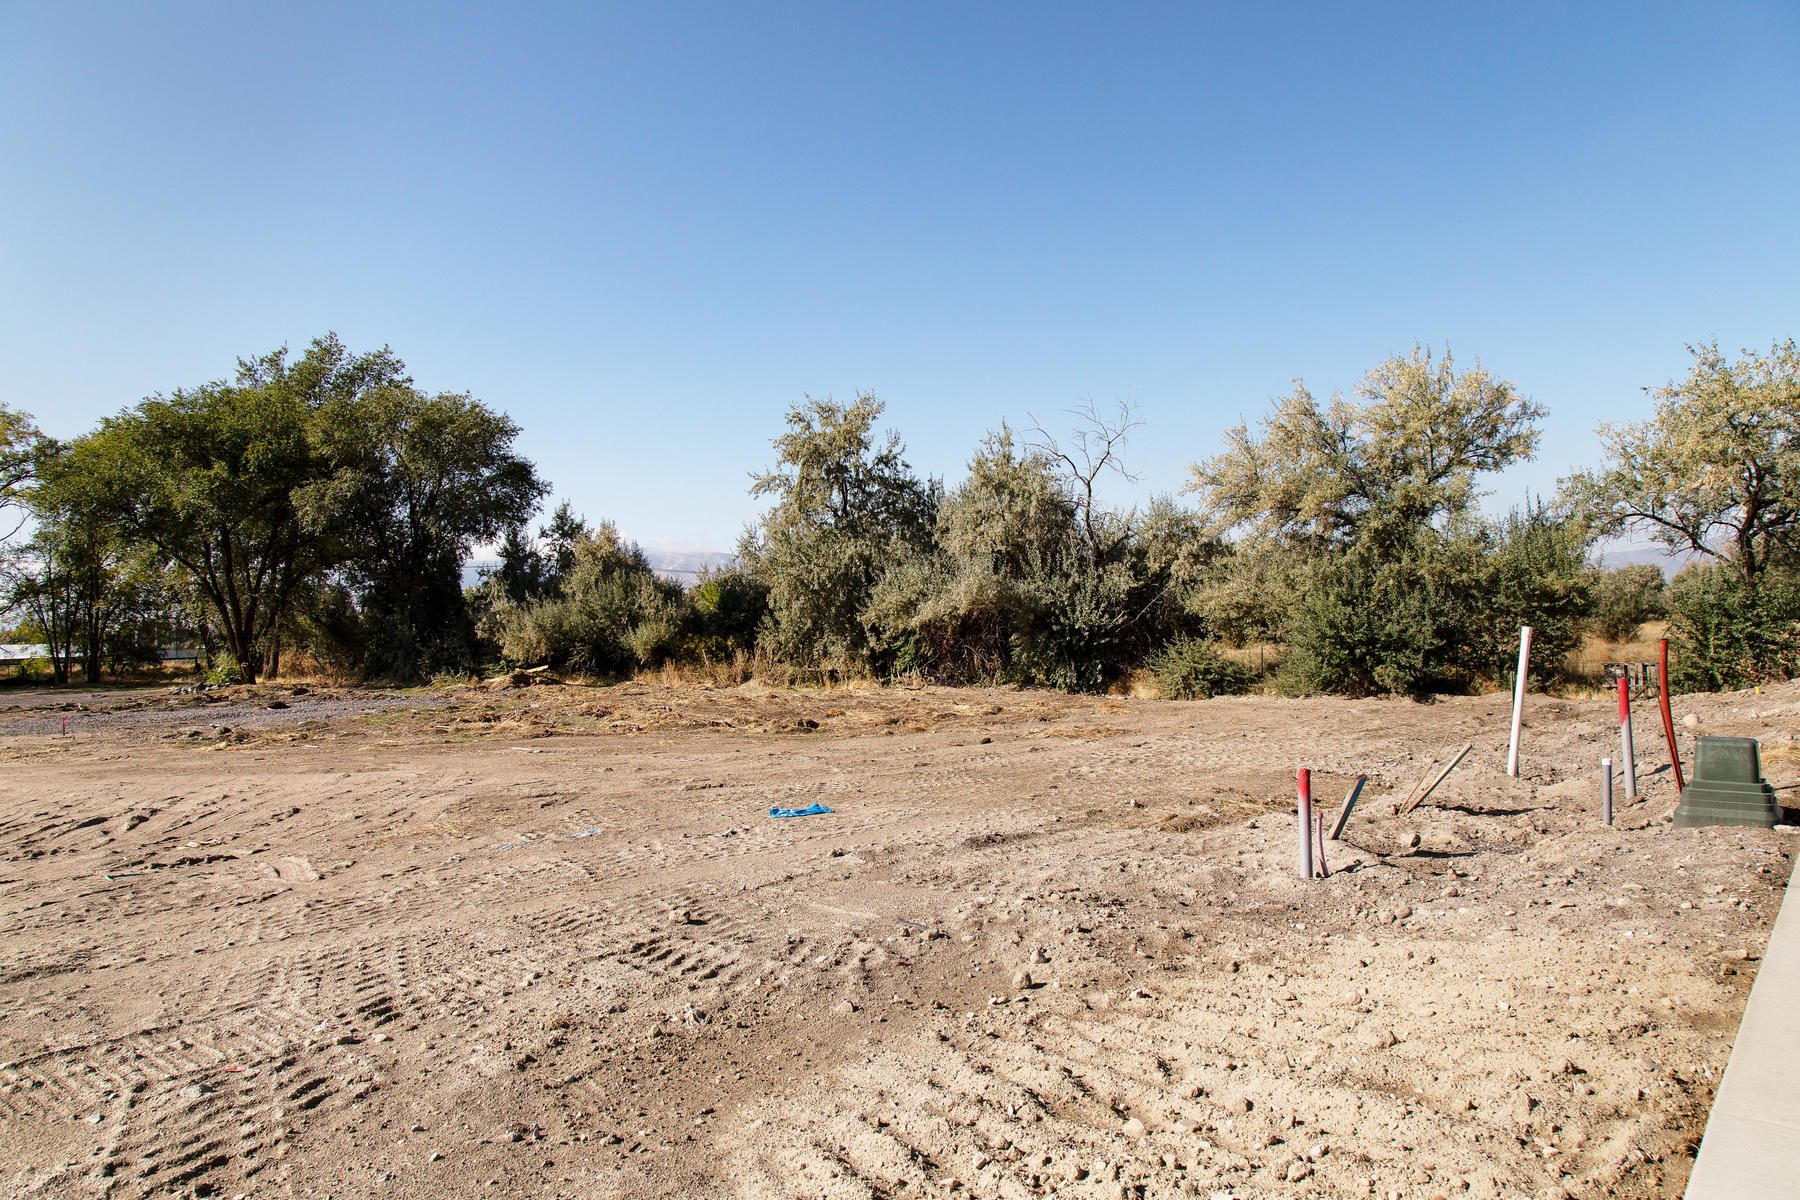 Single Family Homes for Sale at Spec Home to be Completed 268 East 570 South Lot 3, Lehi, Utah 84043 United States